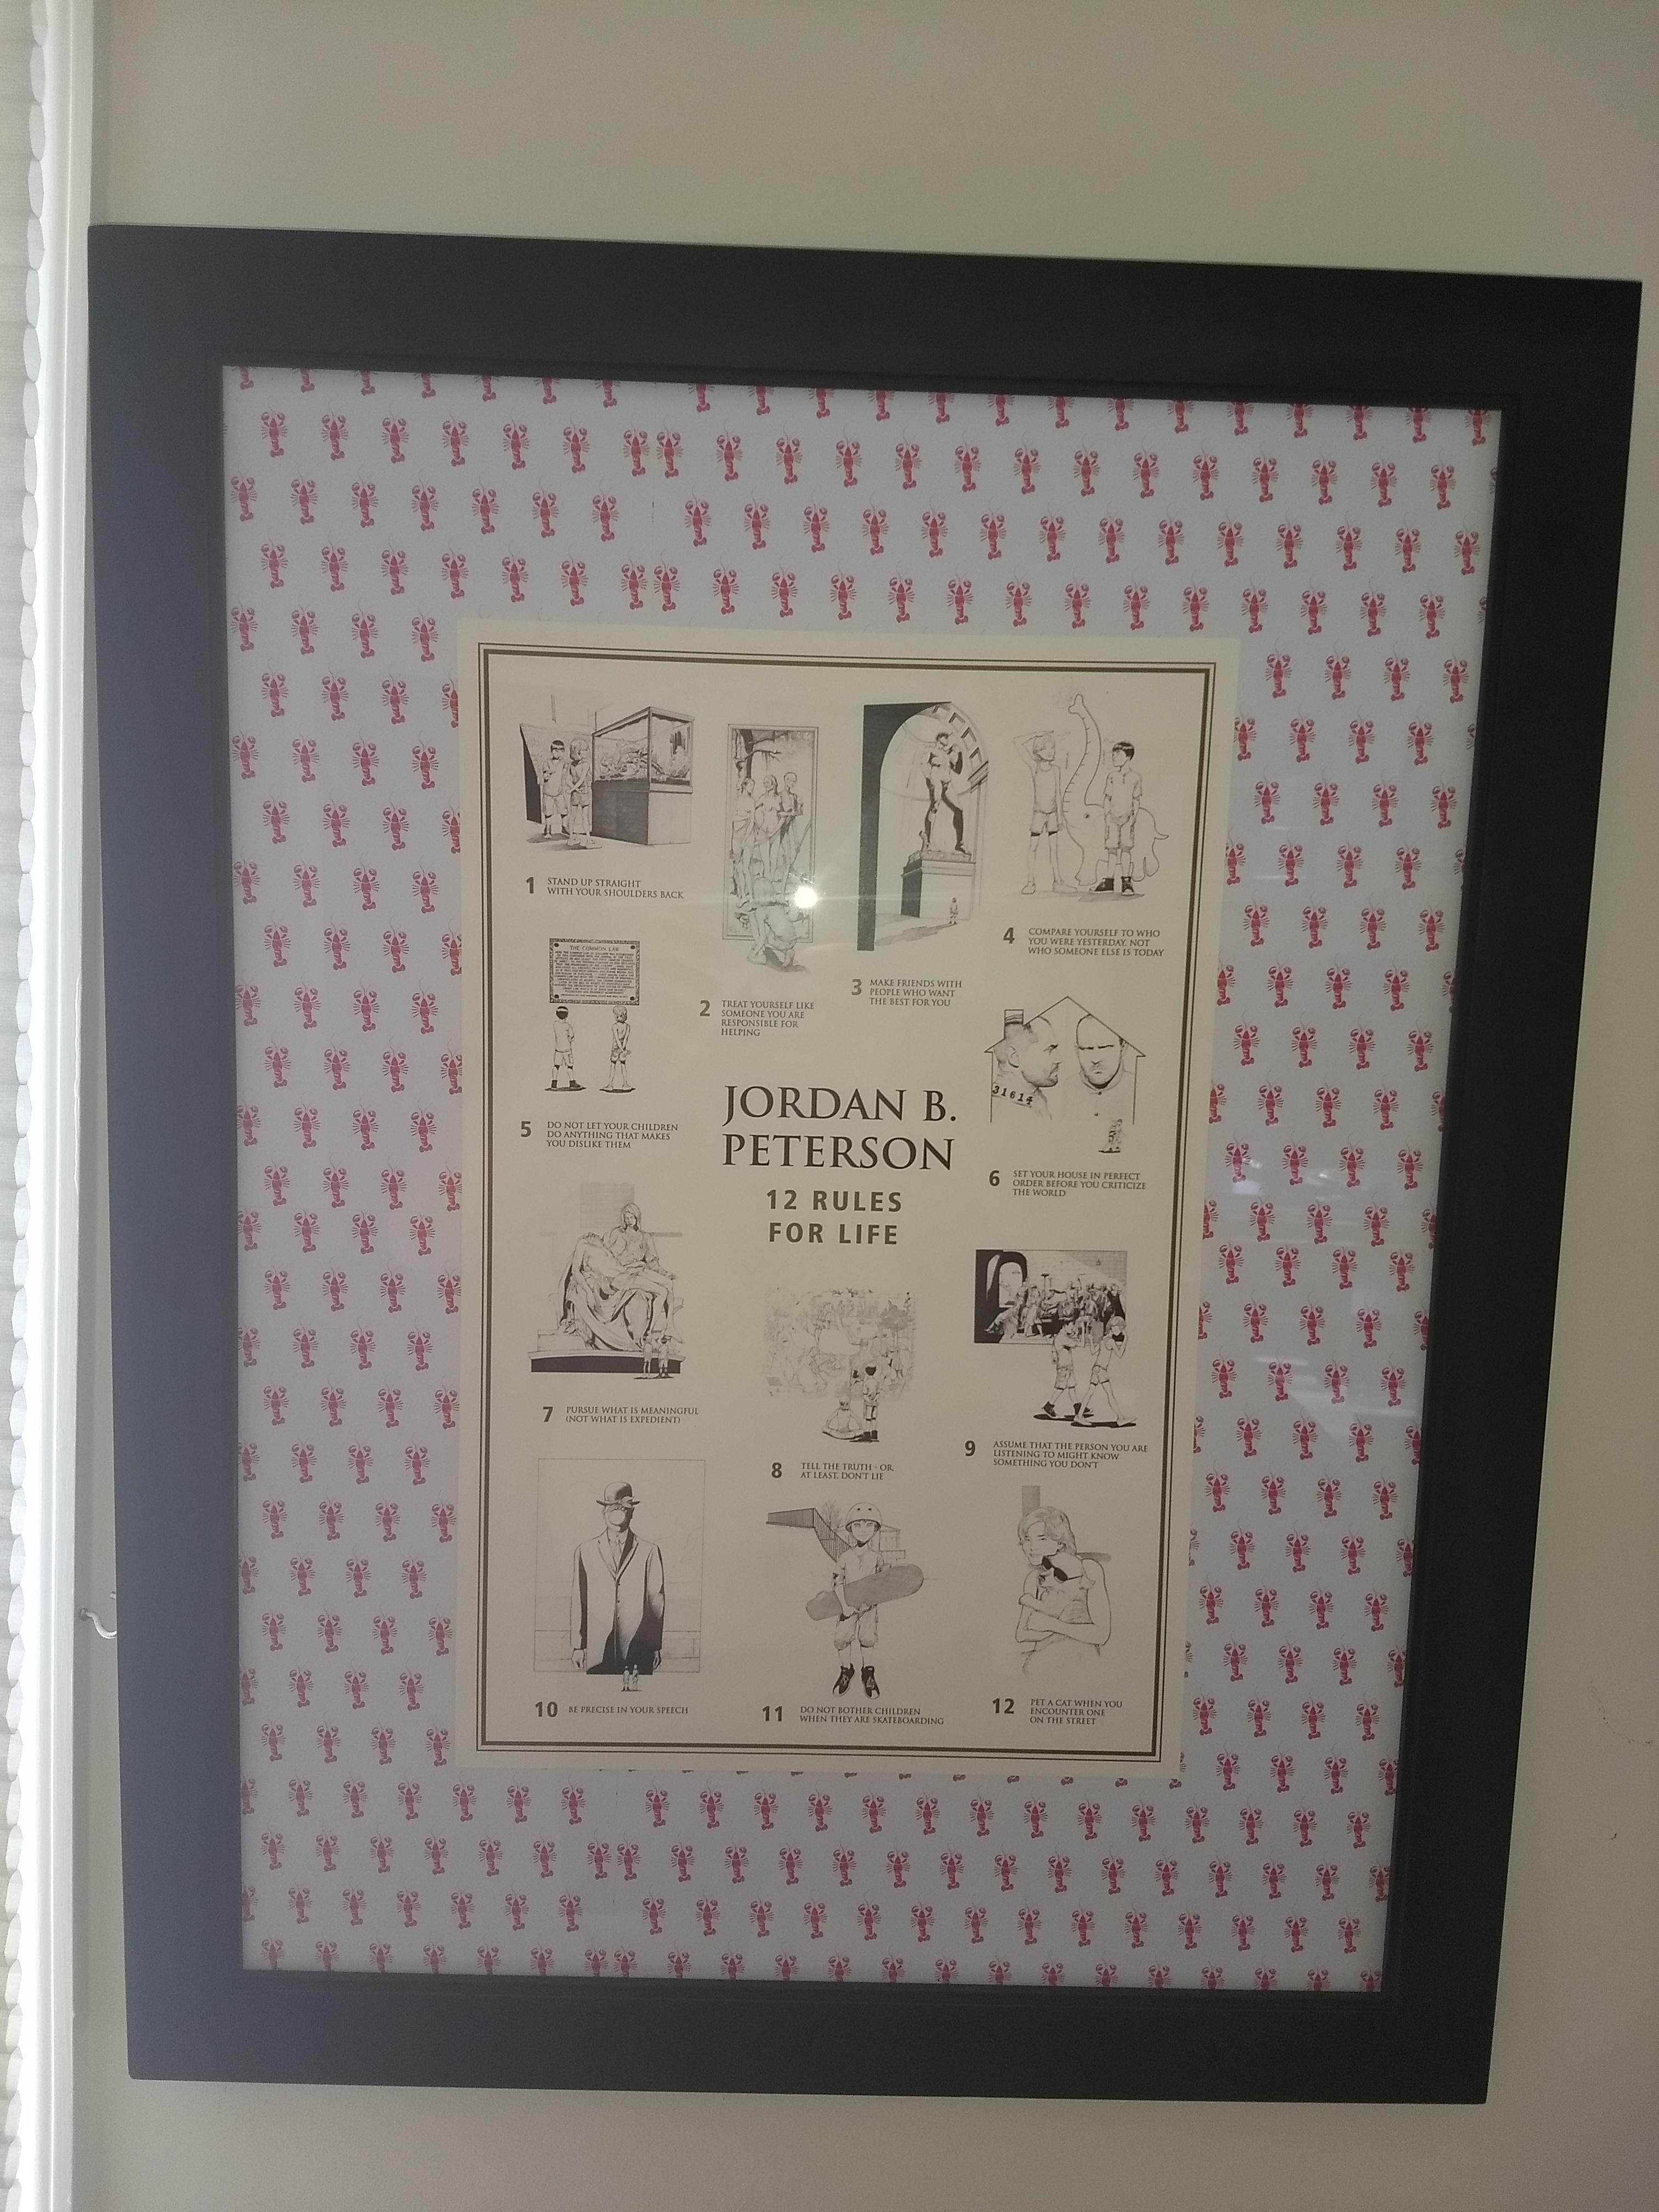 i also framed my 12 rules poster but